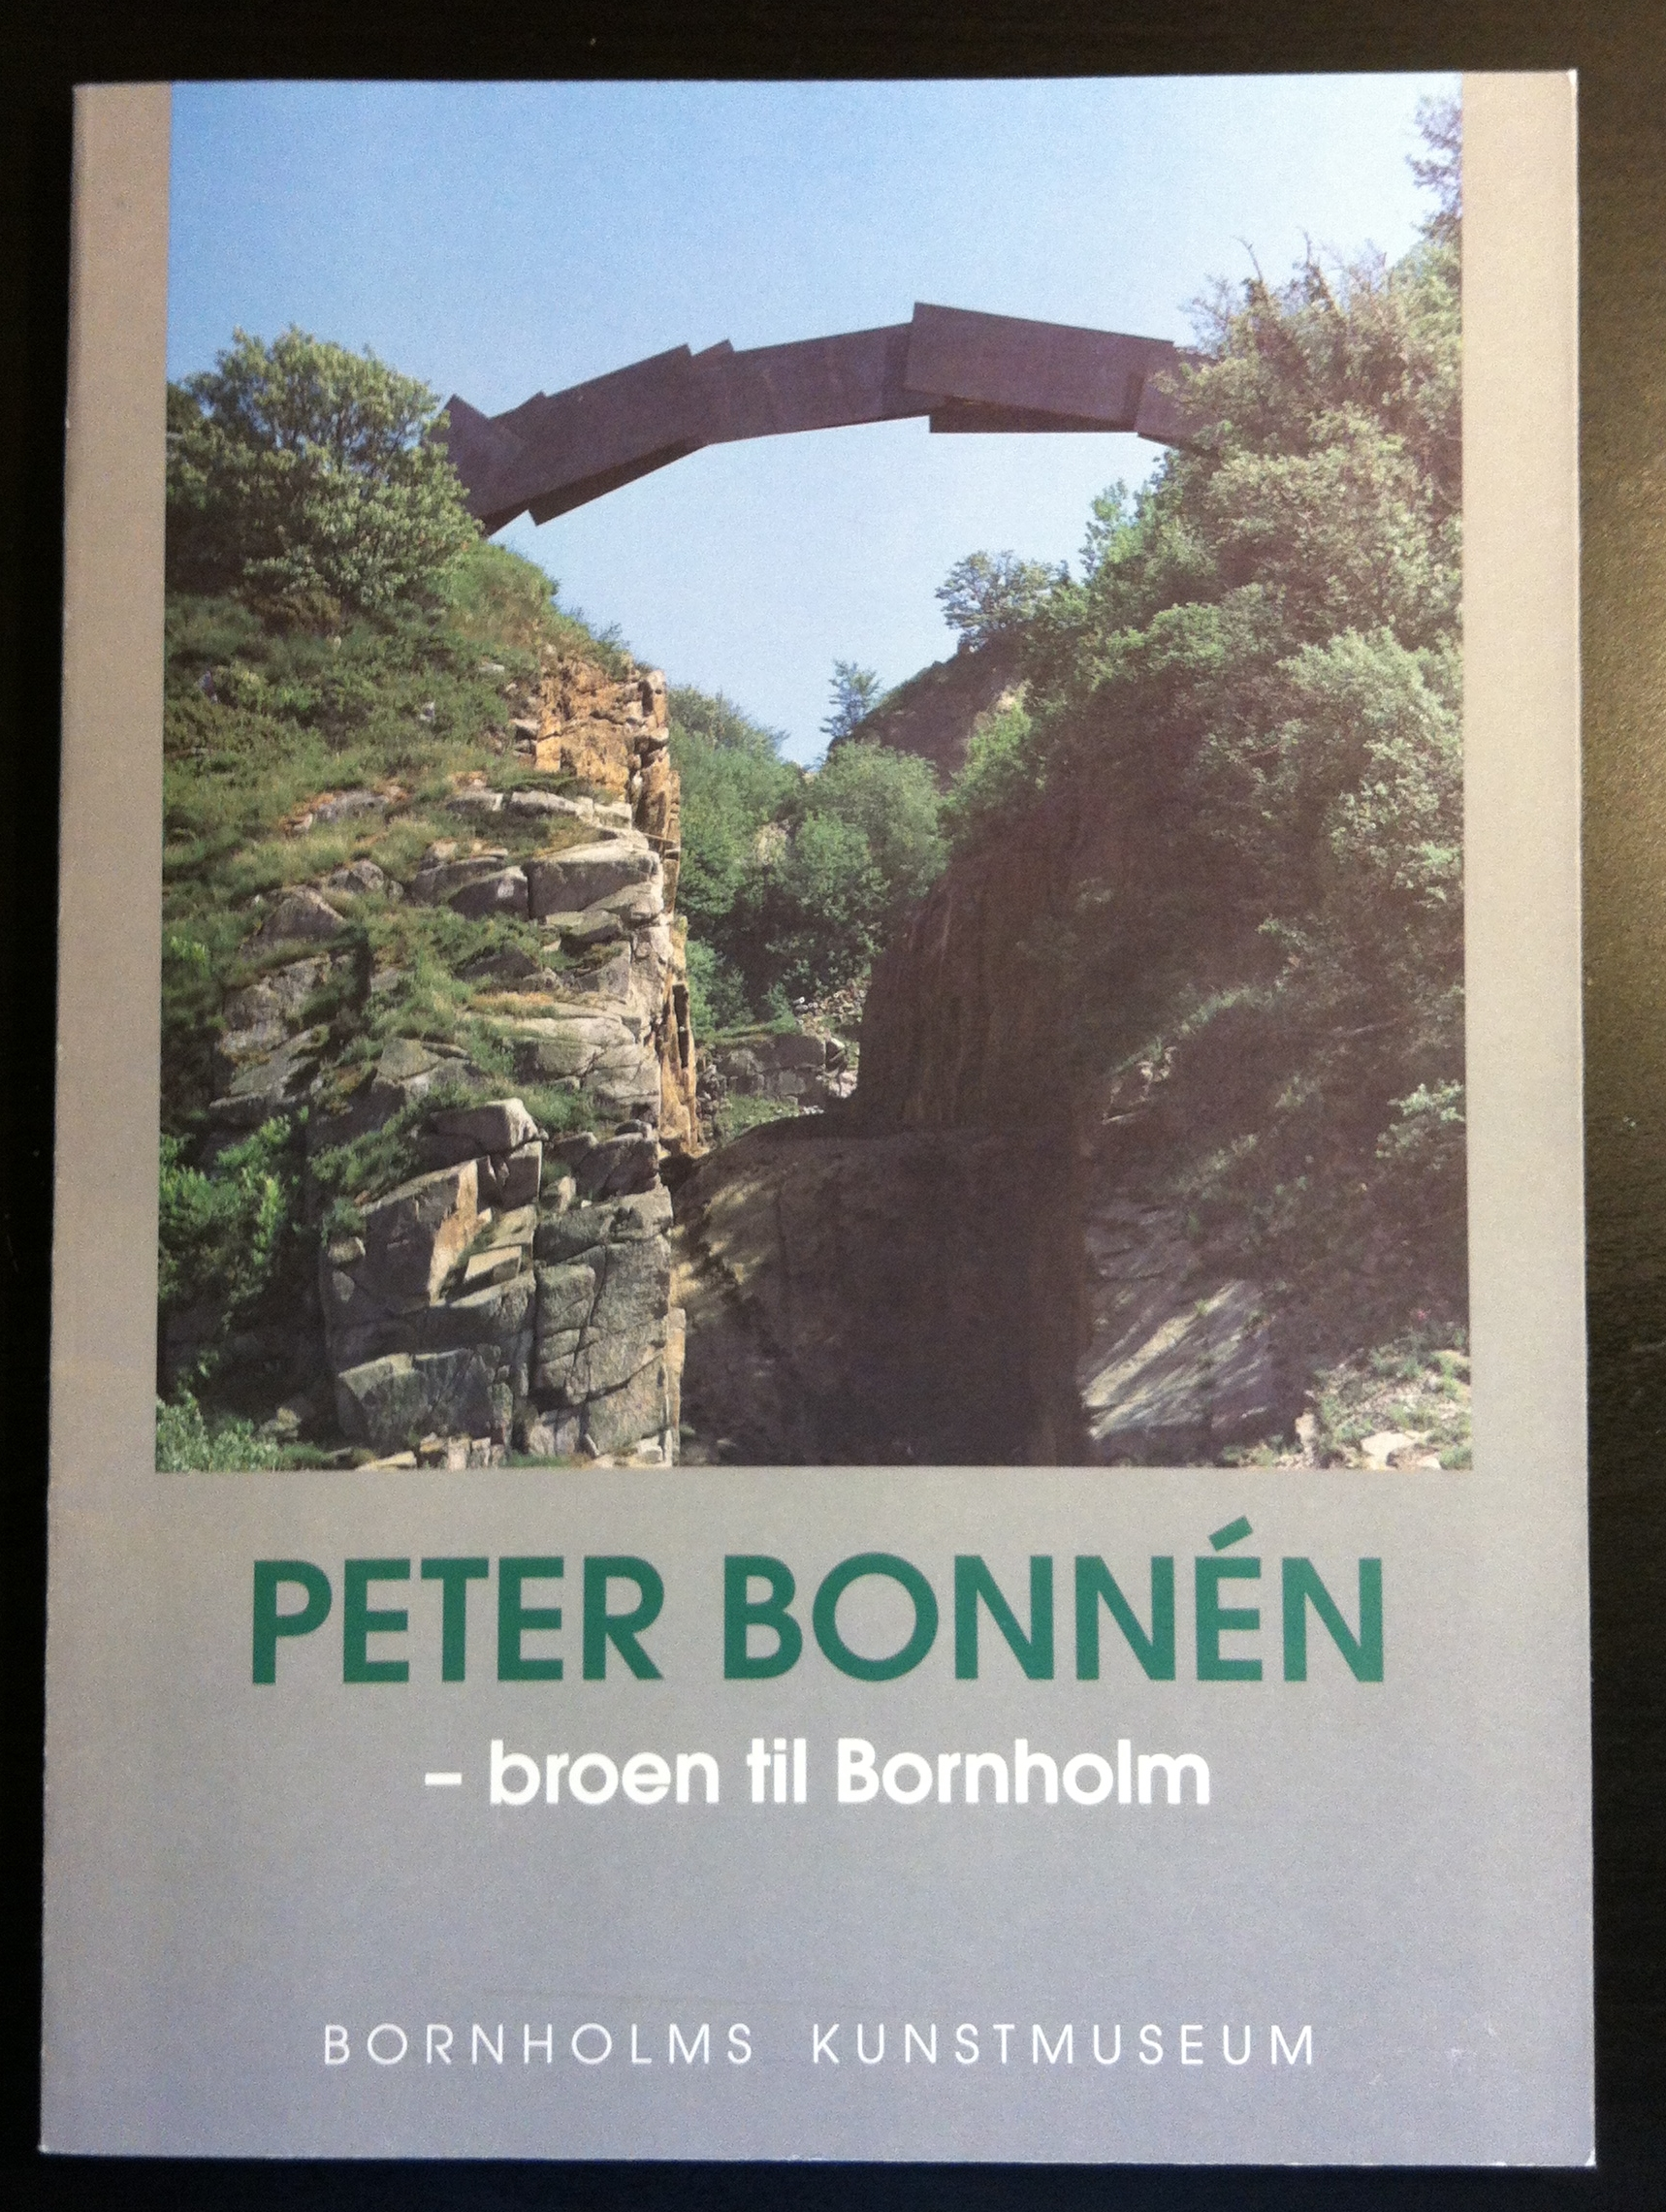 Peter Bonnen